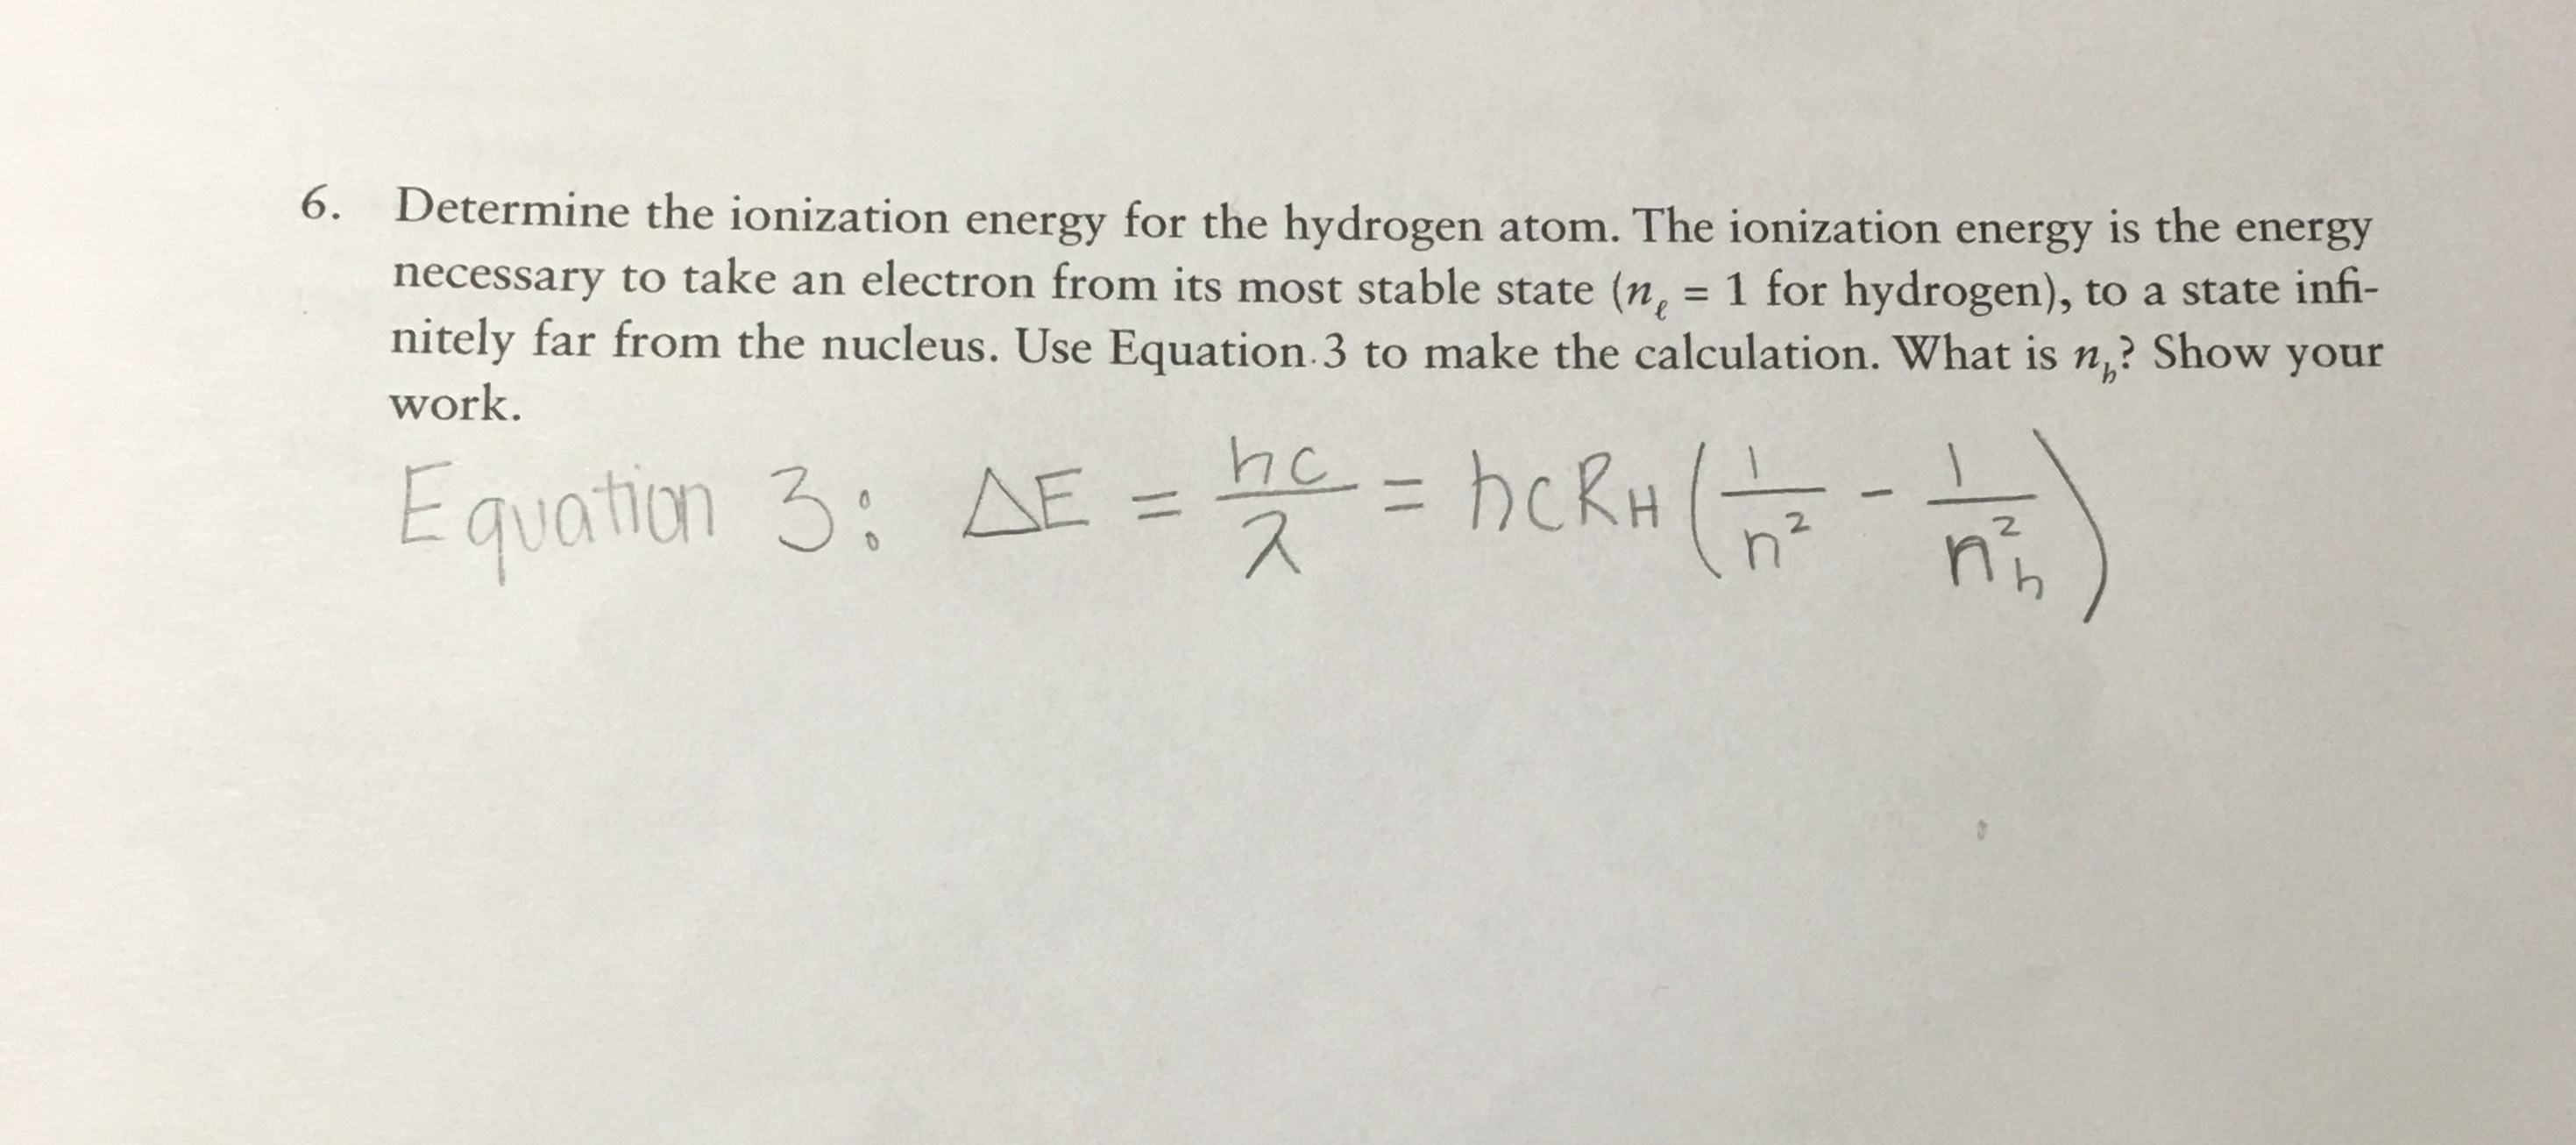 6. Determine the ionization energy for the hydrogen atom. The ionization energy is the energy necessary to take an electron from its most stable state (n, = 1 for hydrogen), to a state infi- nitely far from the nucleus. Use Equation 3 to make the calculation. What is n? Show your work. he hckH Equation 3: A E 2. n